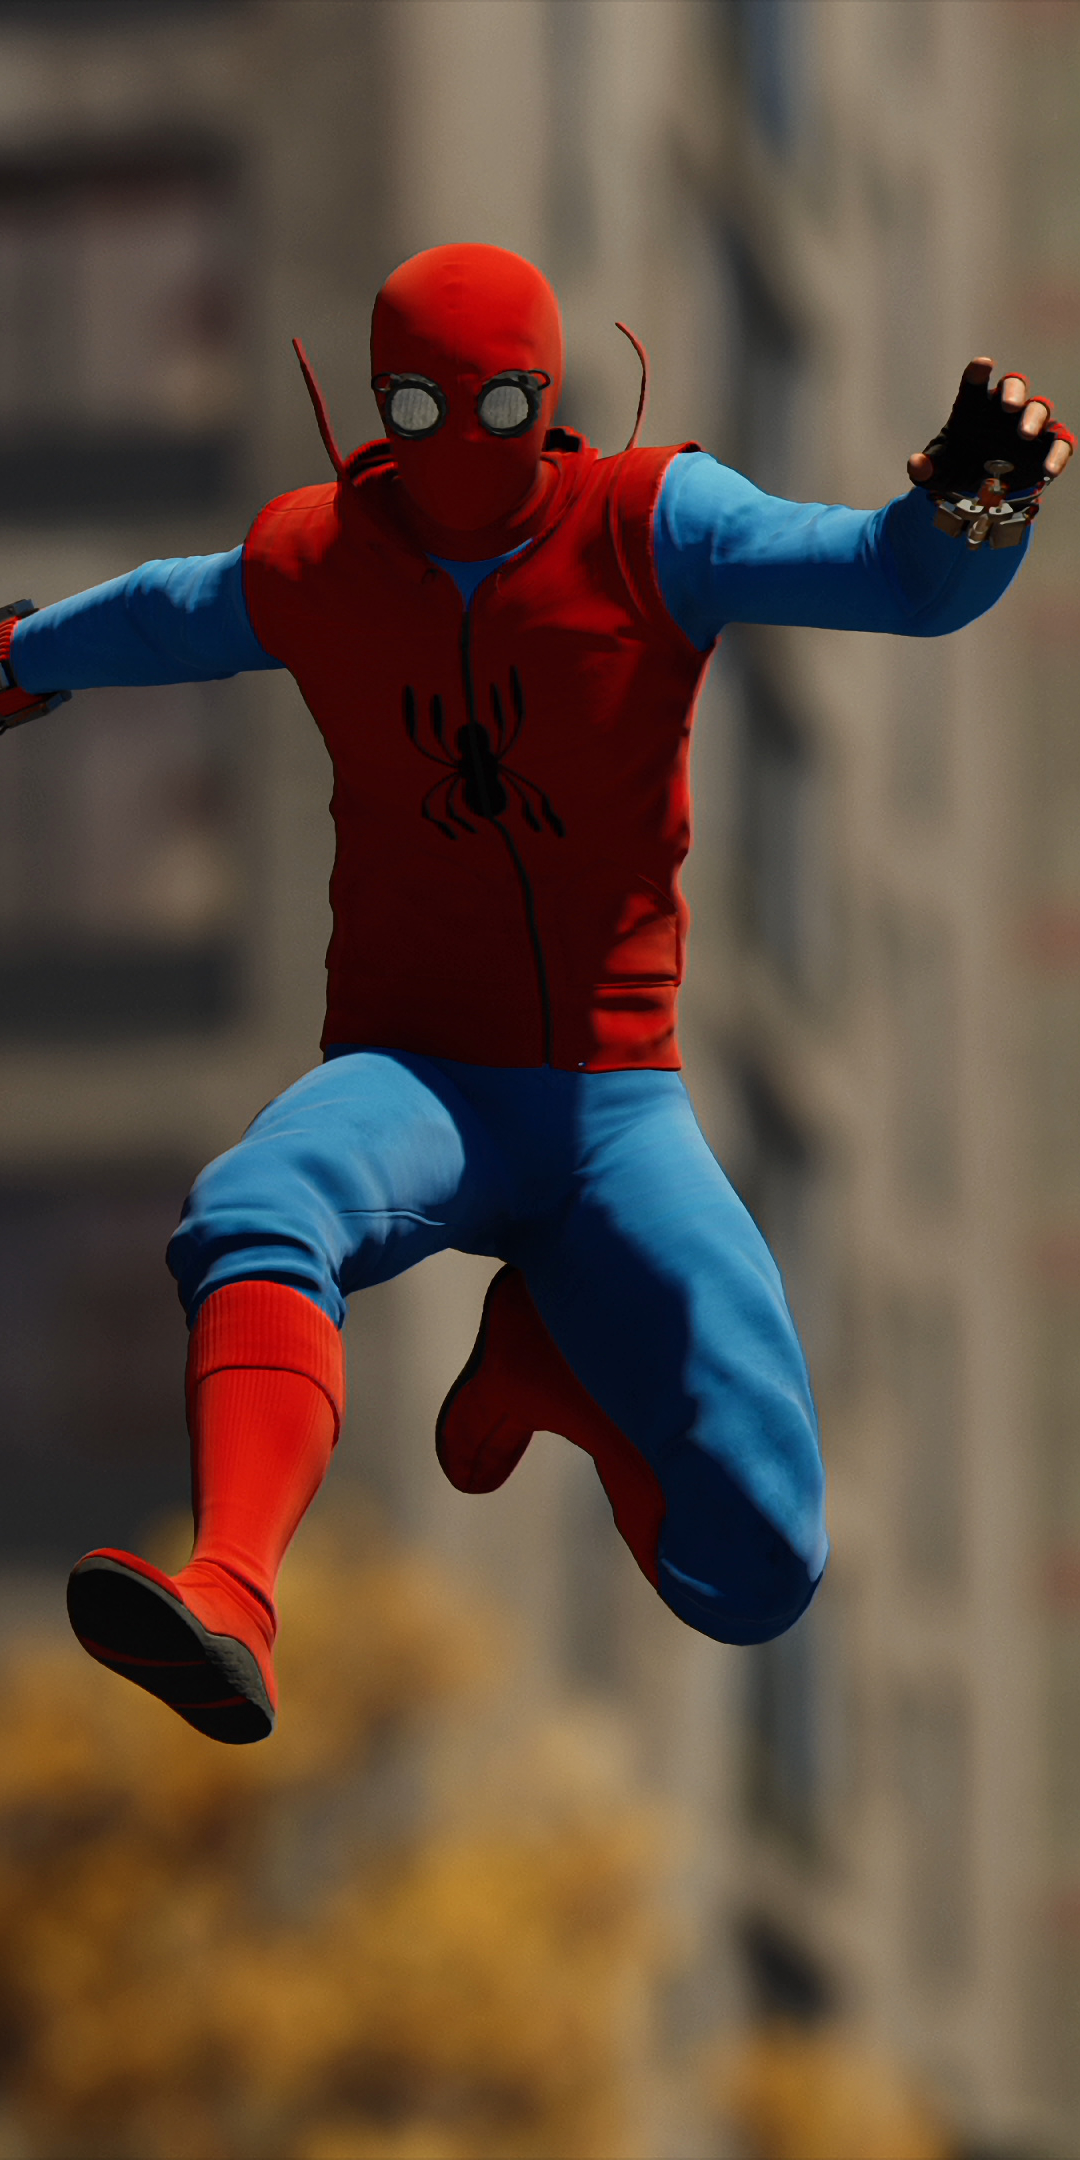 Video Game Spider Man Ps4 1080x1920 Wallpaper Id 737470